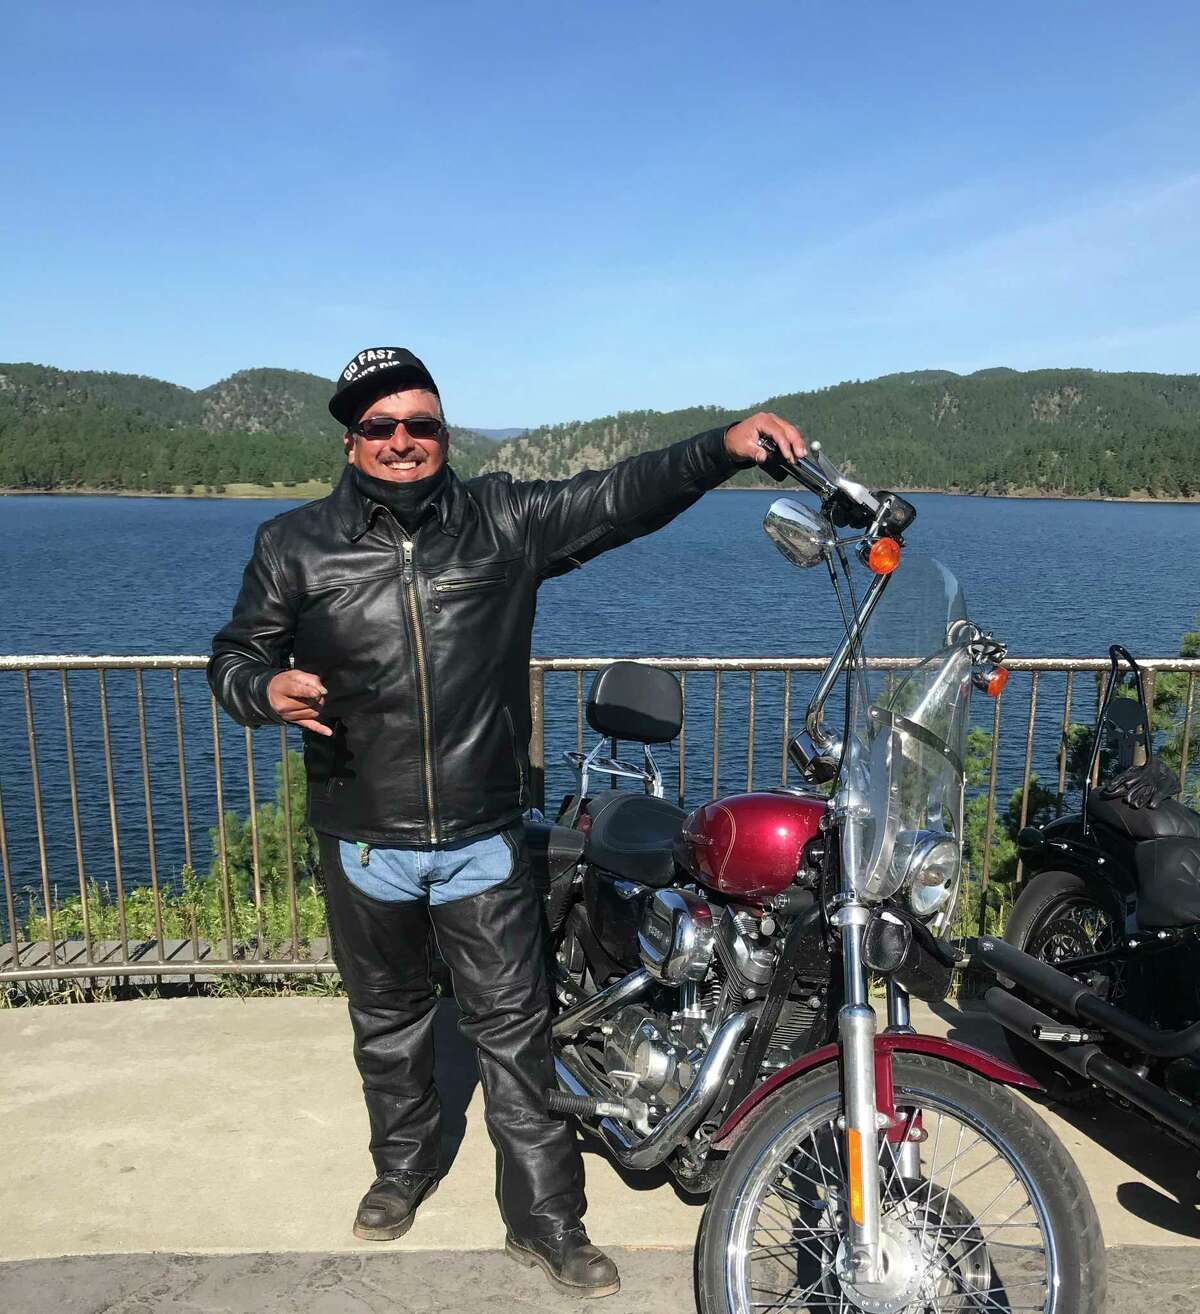 Kenny Cervantes rode his motorcycle from Nebraska to Sturgis, S.D. in August.